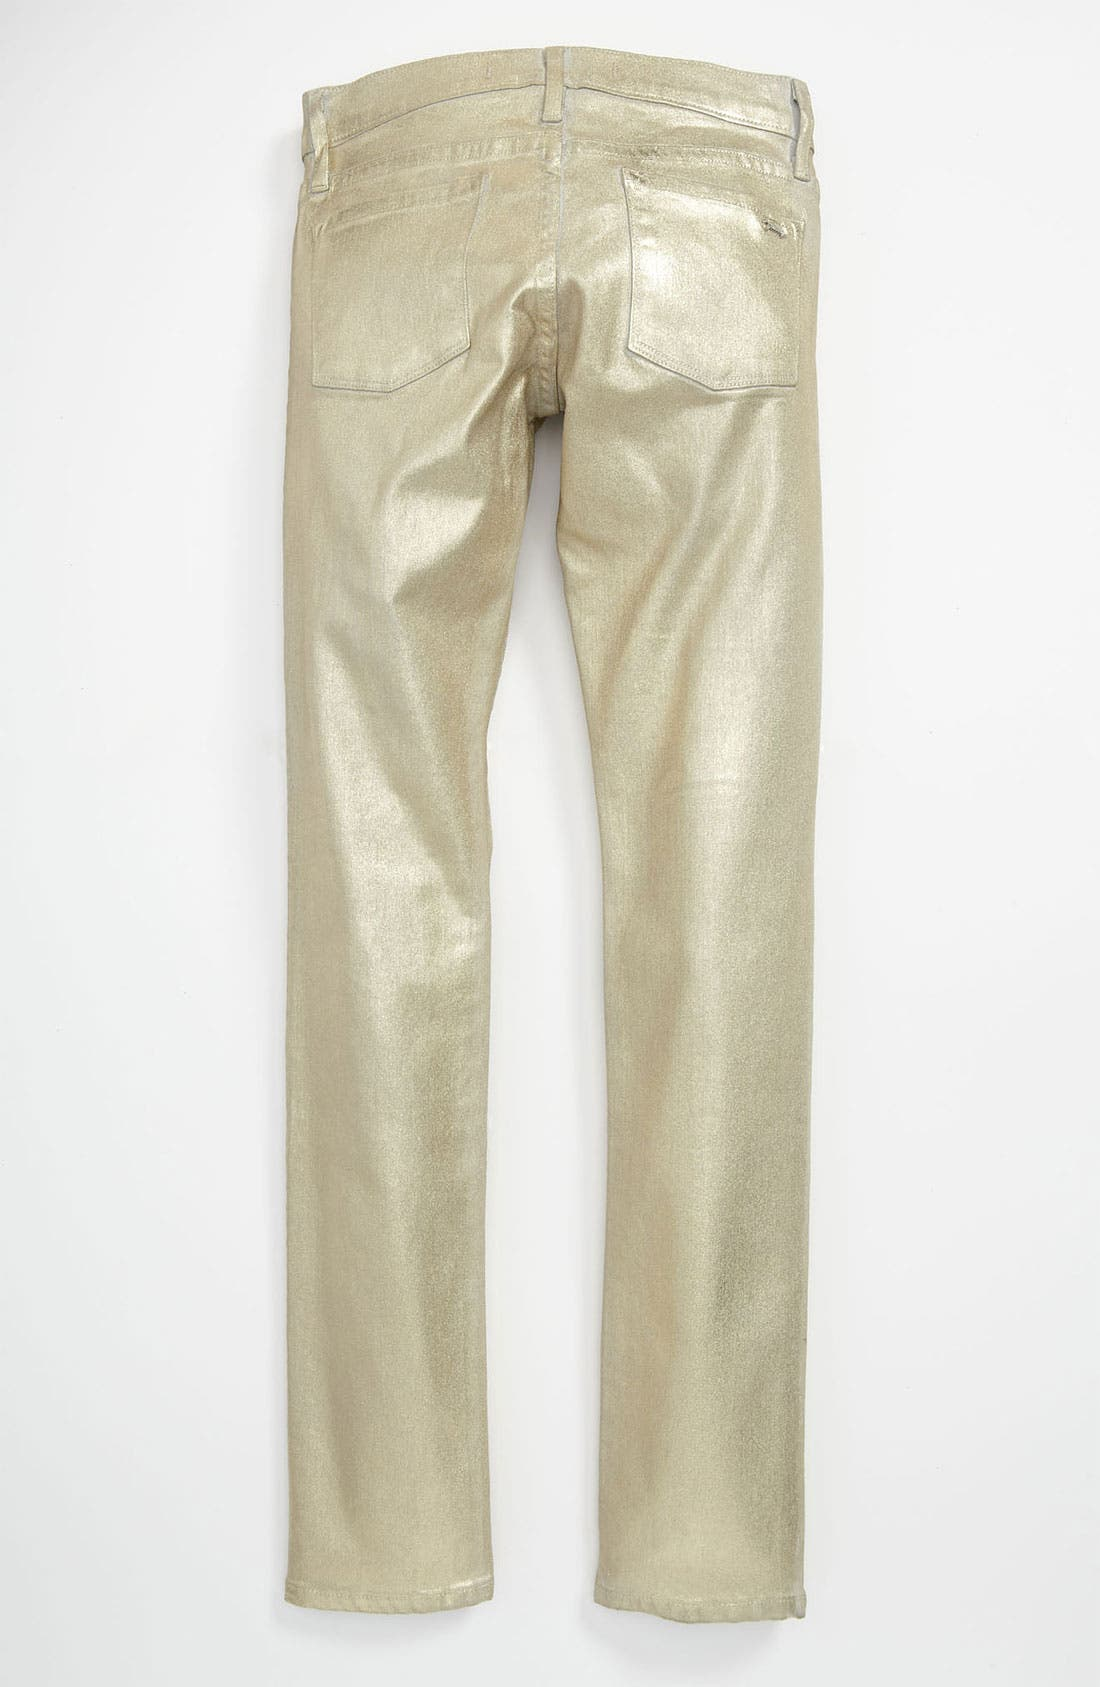 Alternate Image 1 Selected - Juicy Couture Metallic Skinny Pants (Little Girls & Big Girls)